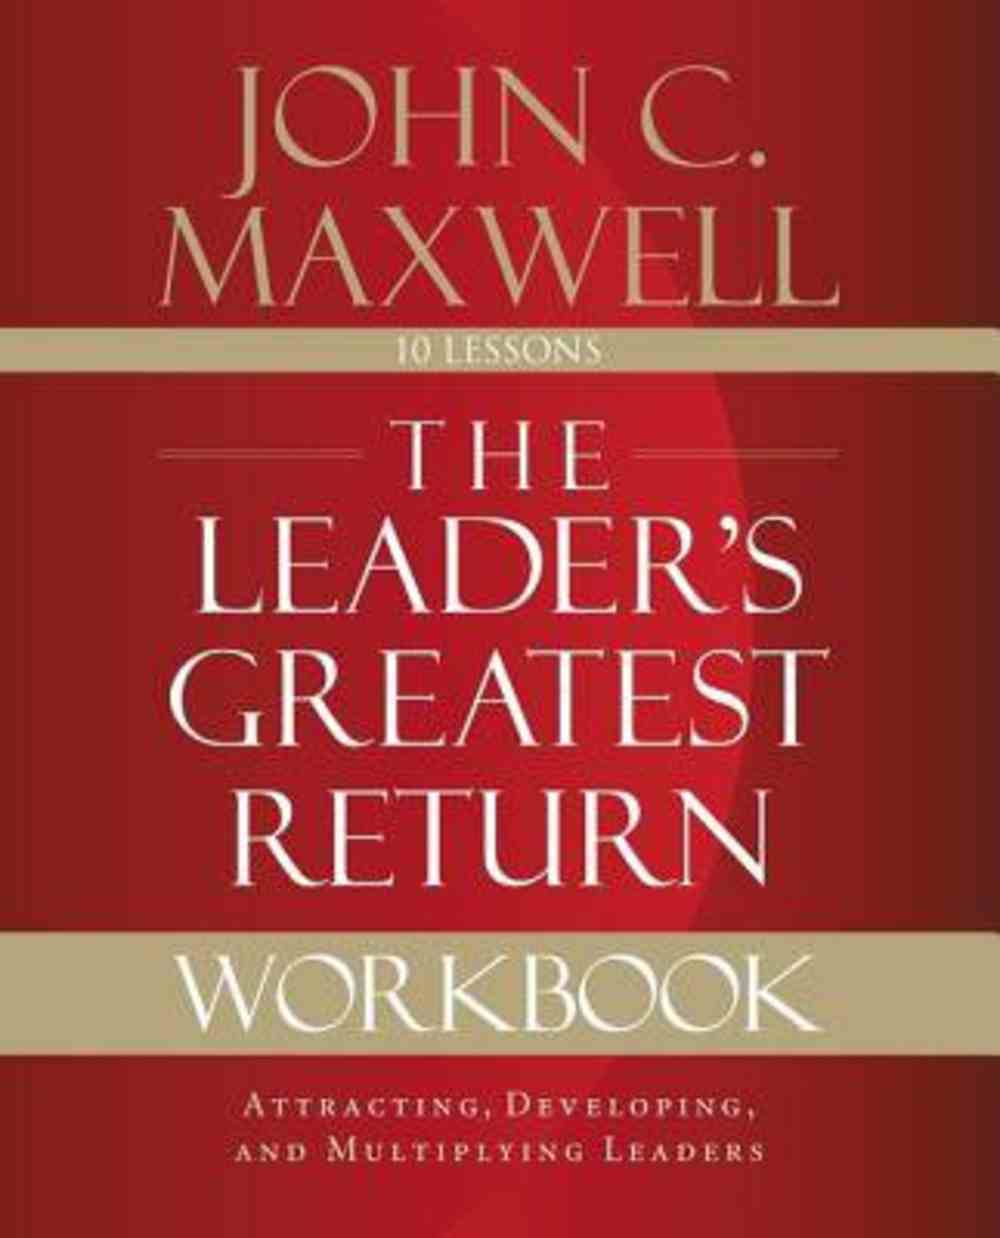 The Leader's Greatest Return: Attracting, Developing, and Reproducing Leaders (Workbook) Paperback